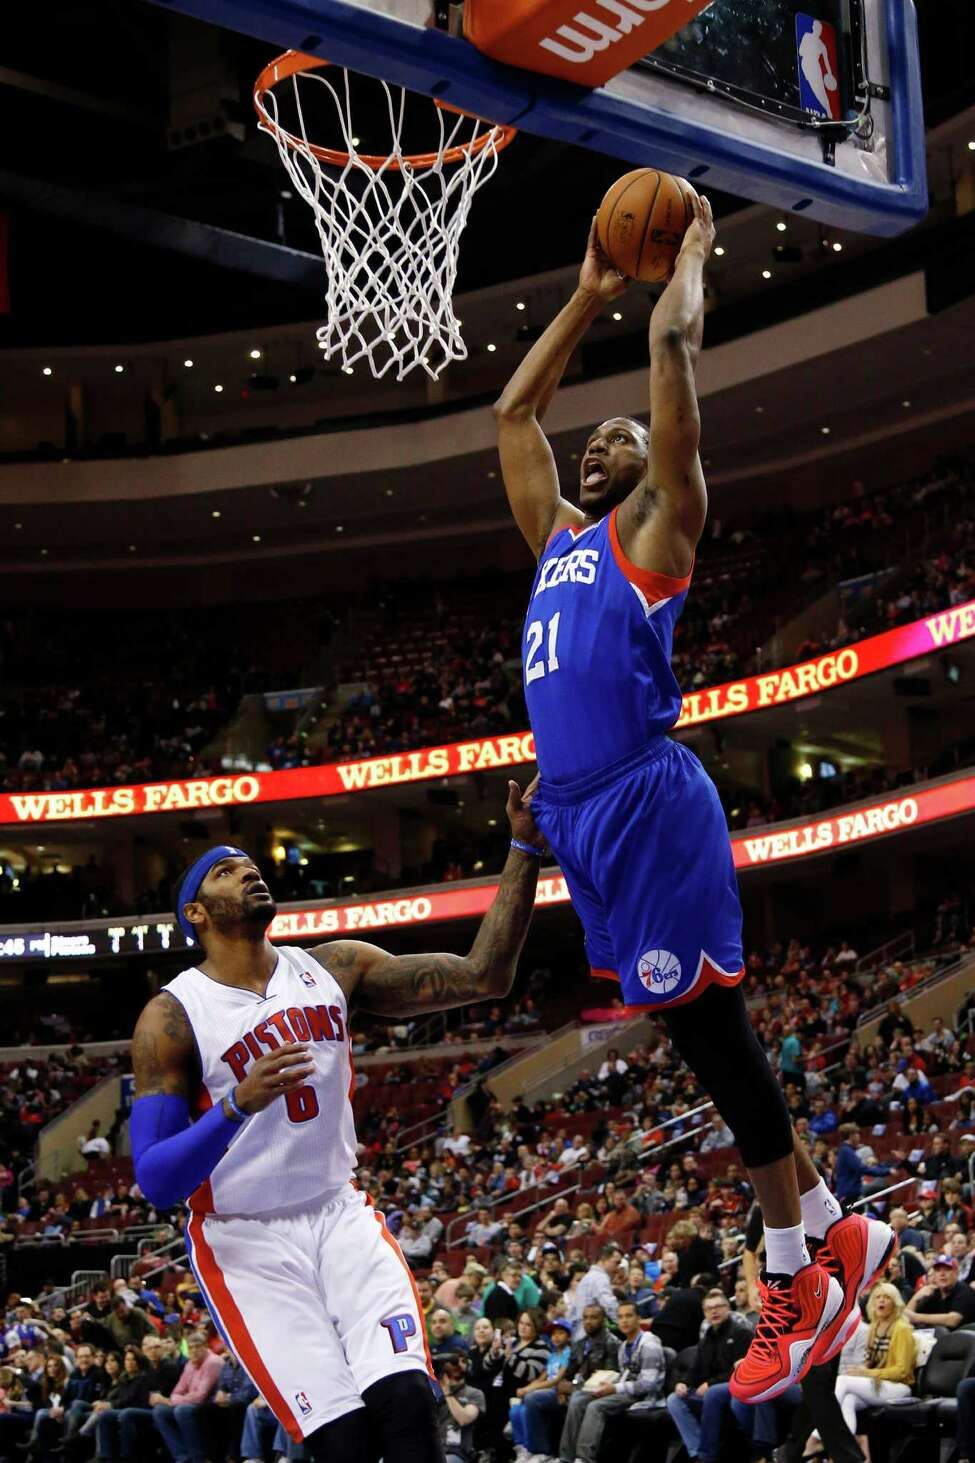 Philadelphia 76ers' Thaddeus Young, right, goes up for a dunk against Detroit Pistons' Josh Smith during the first half of an NBA basketball game on Saturday, March 29, 2014, in Philadelphia. (AP Photo/Matt Slocum) ORG XMIT: PXC101